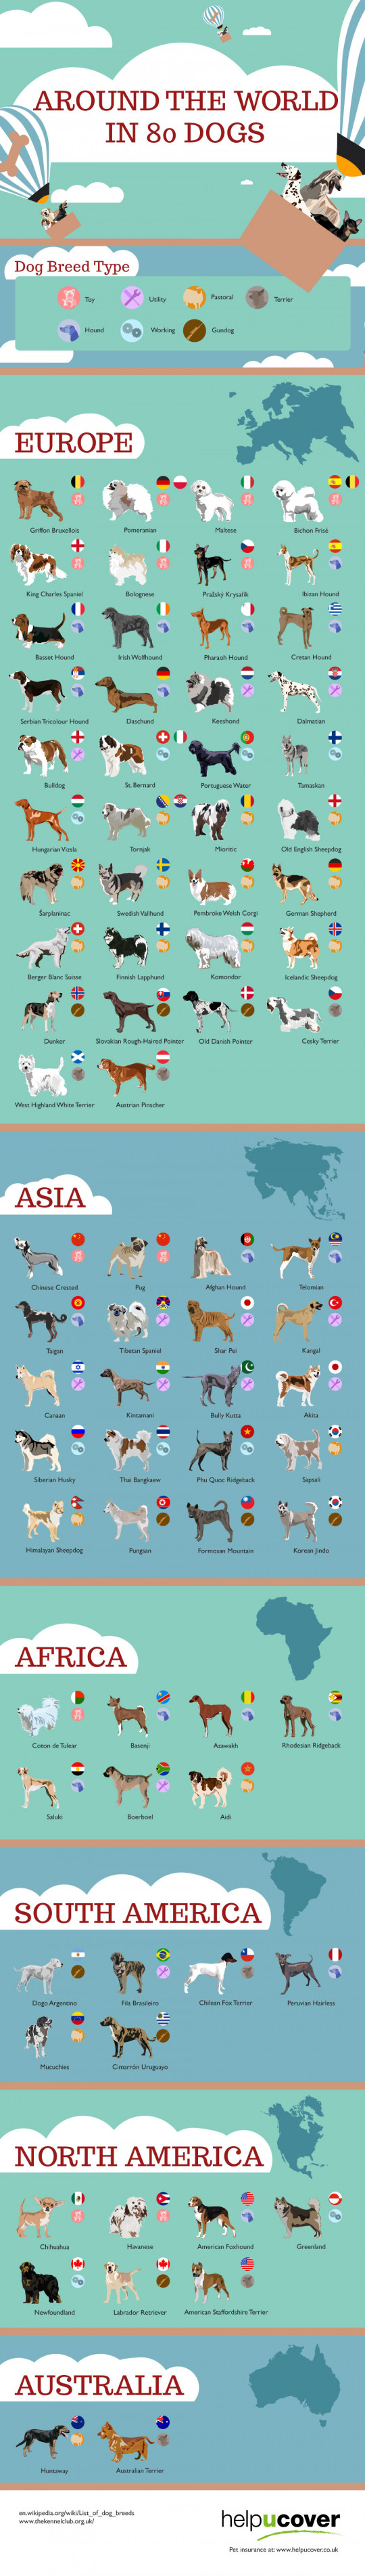 Around the World in 80 Dogs